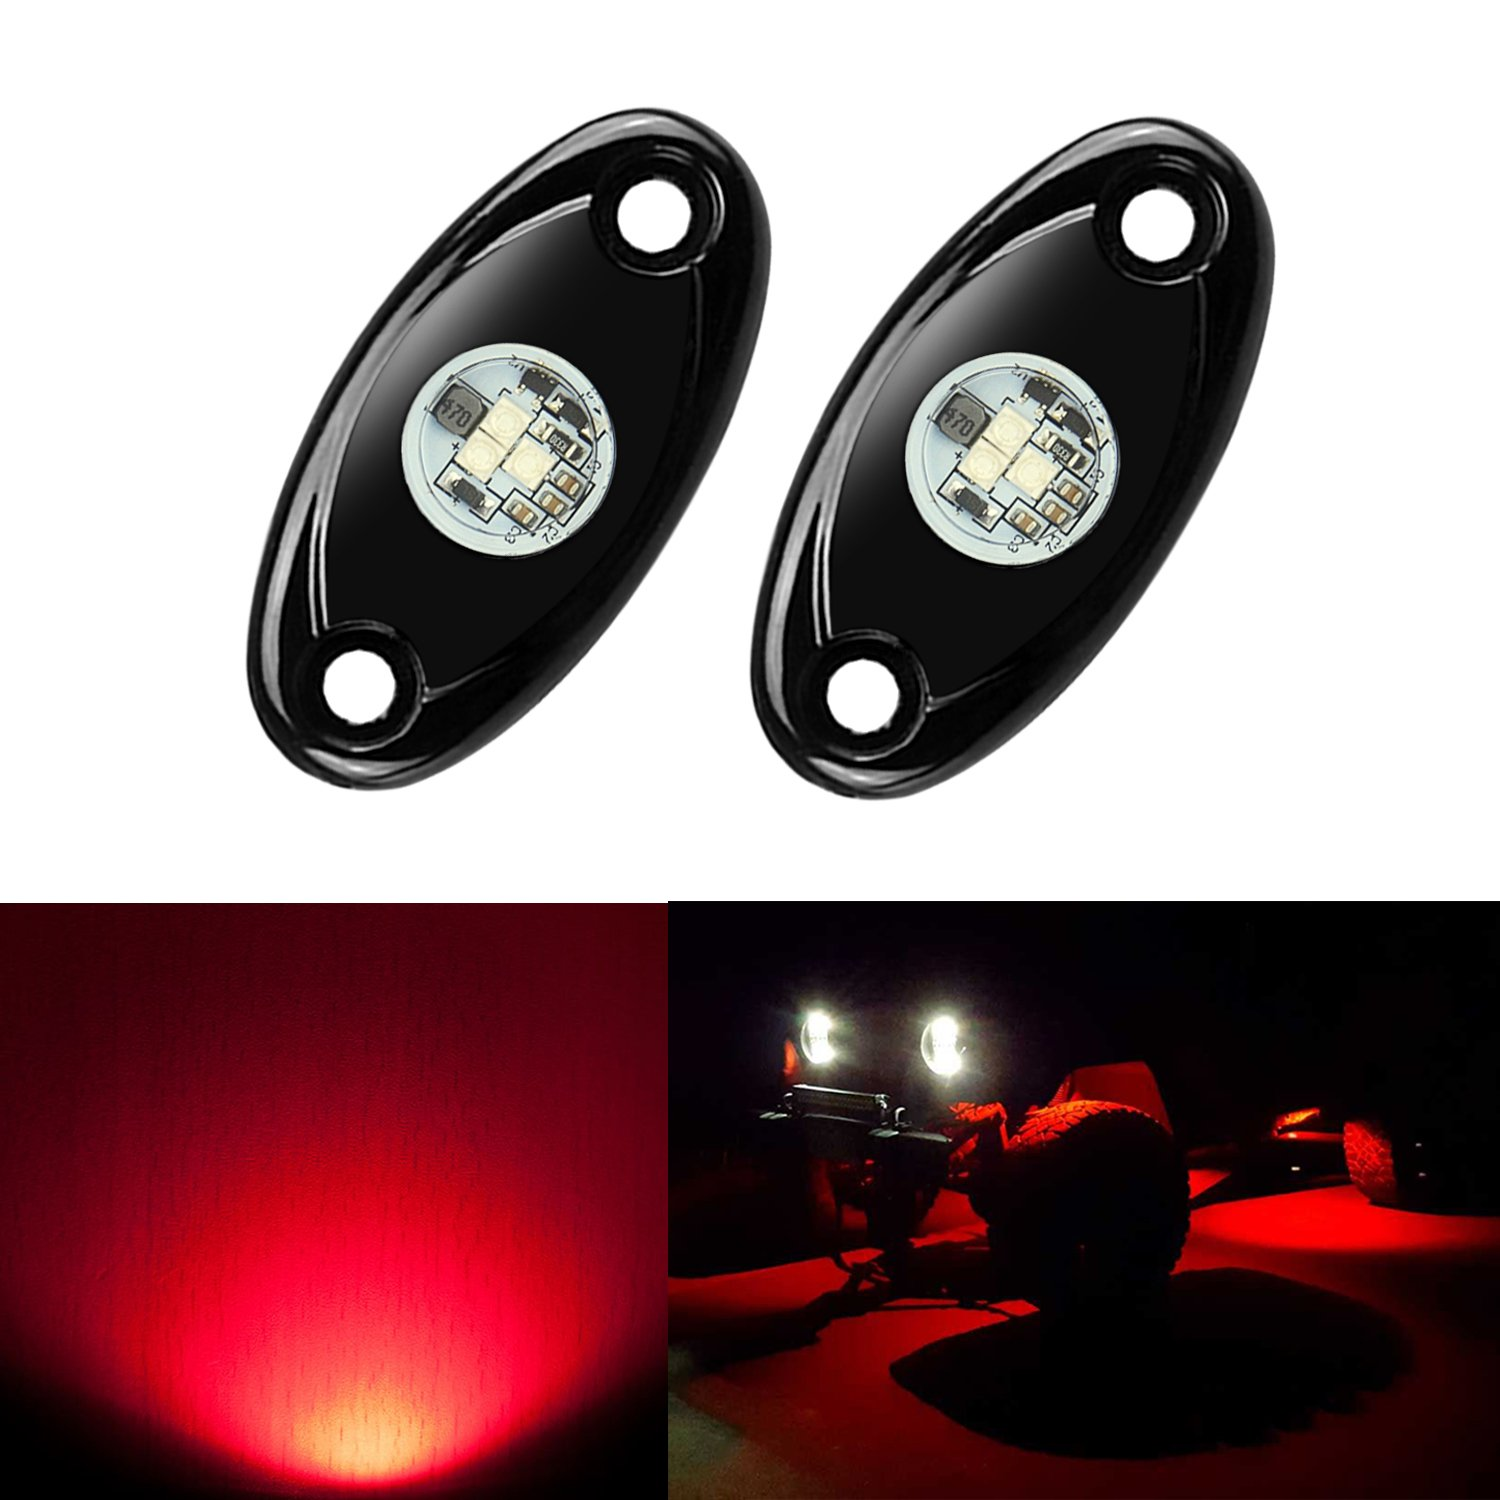 Ampper RGB LED Rock Lights with Bluetooth Control, Timing Function, Music Mode - Neon LED Underglow Light Kits for Car Offroad Boat Trail Rig Lamp (Waterproof, 4 Pods)